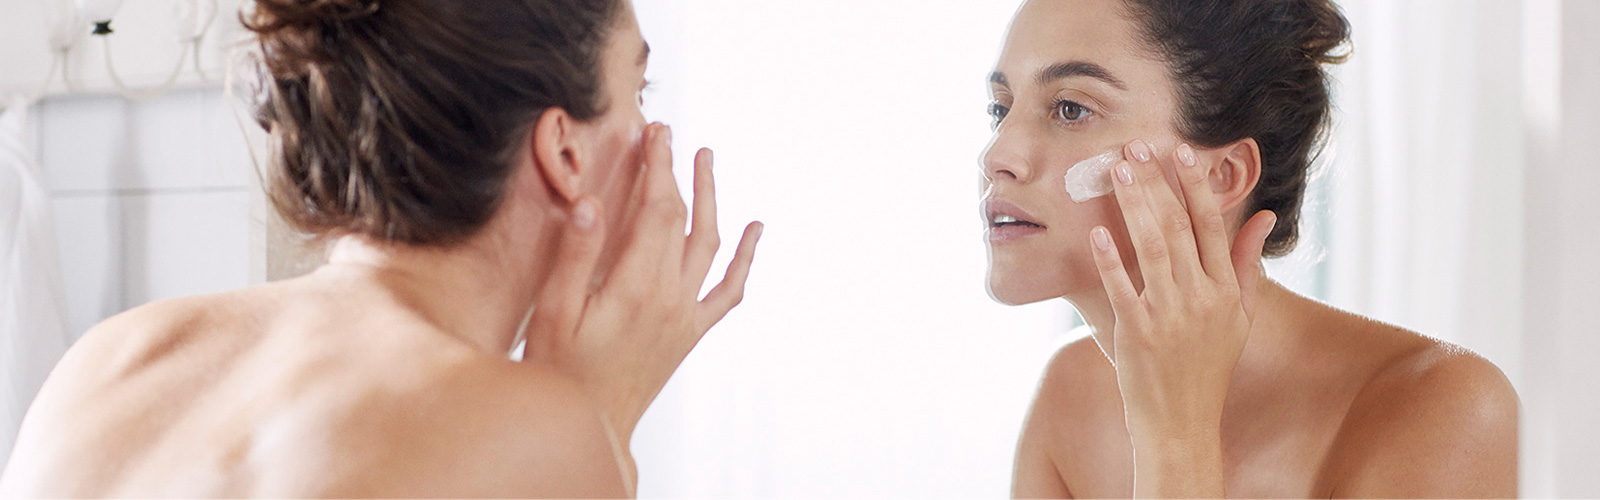 Woman moisturizing her face